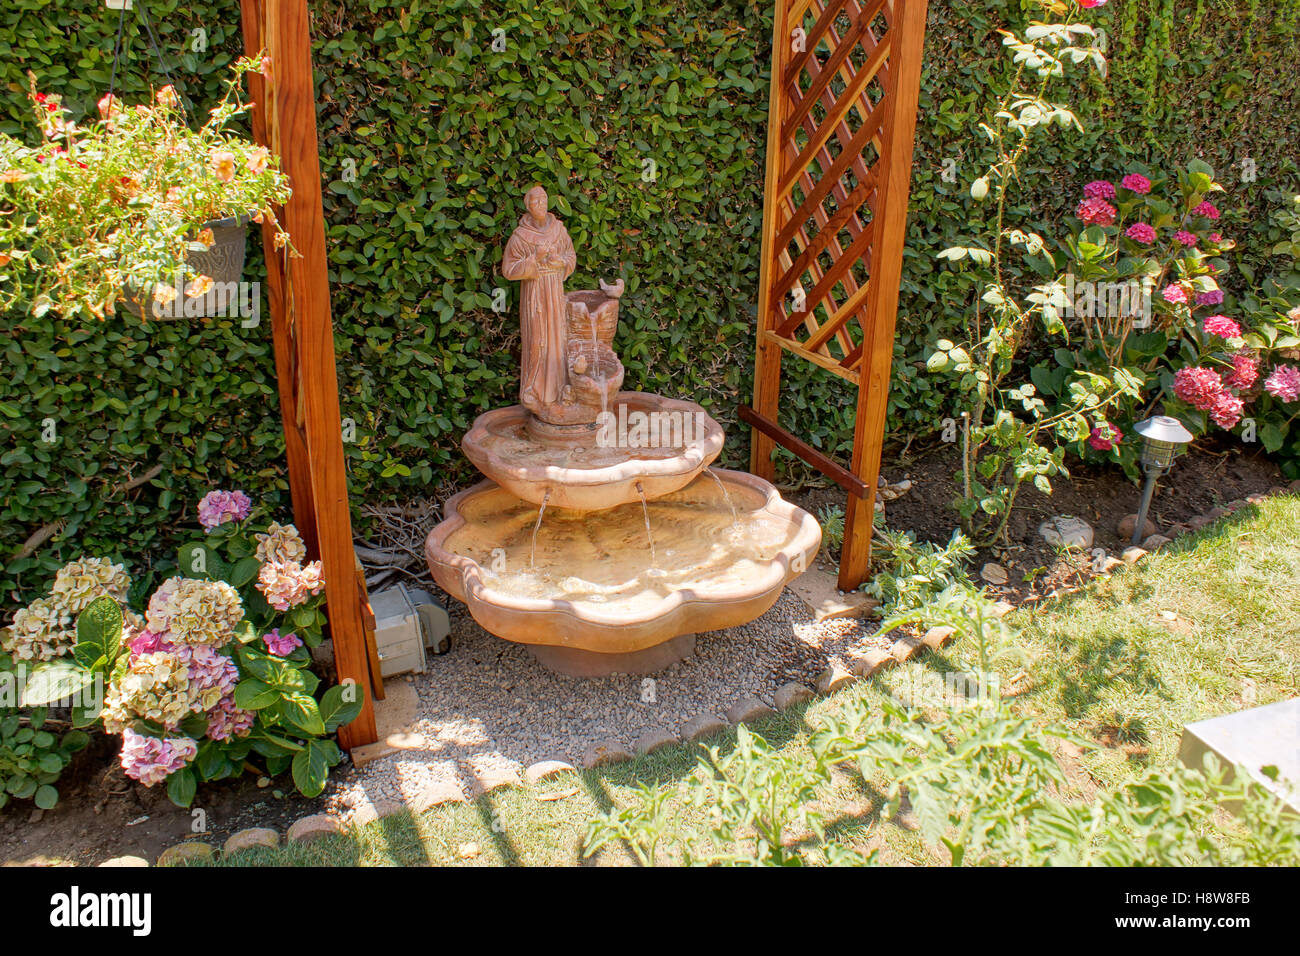 saint francis of assisi statue in a backyard water fountain stock